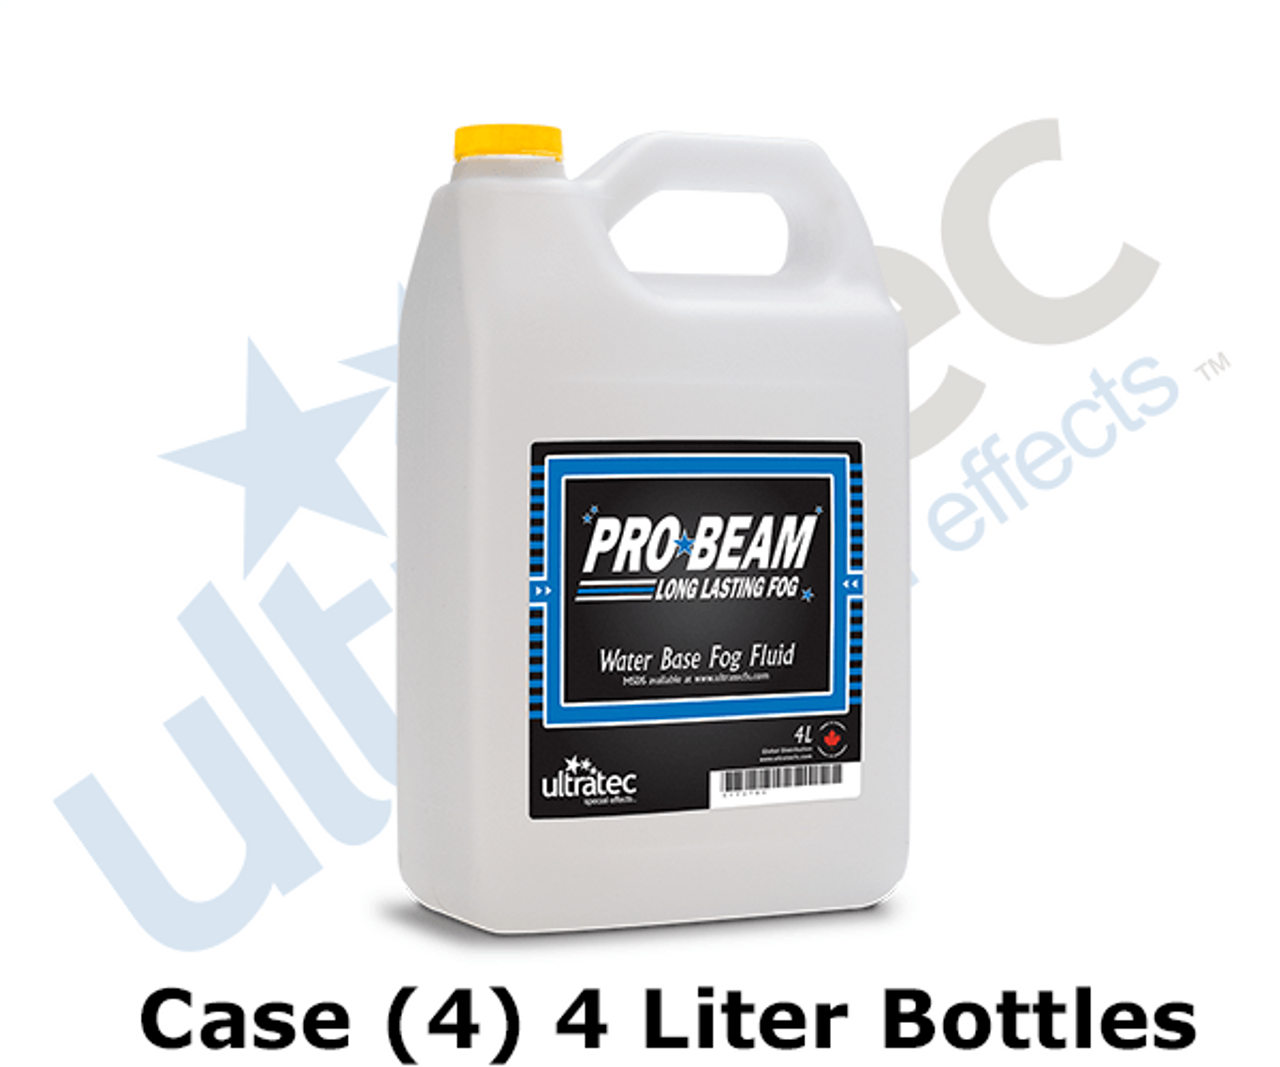 Ultratec Pro Beam Fog Fluid by the Case